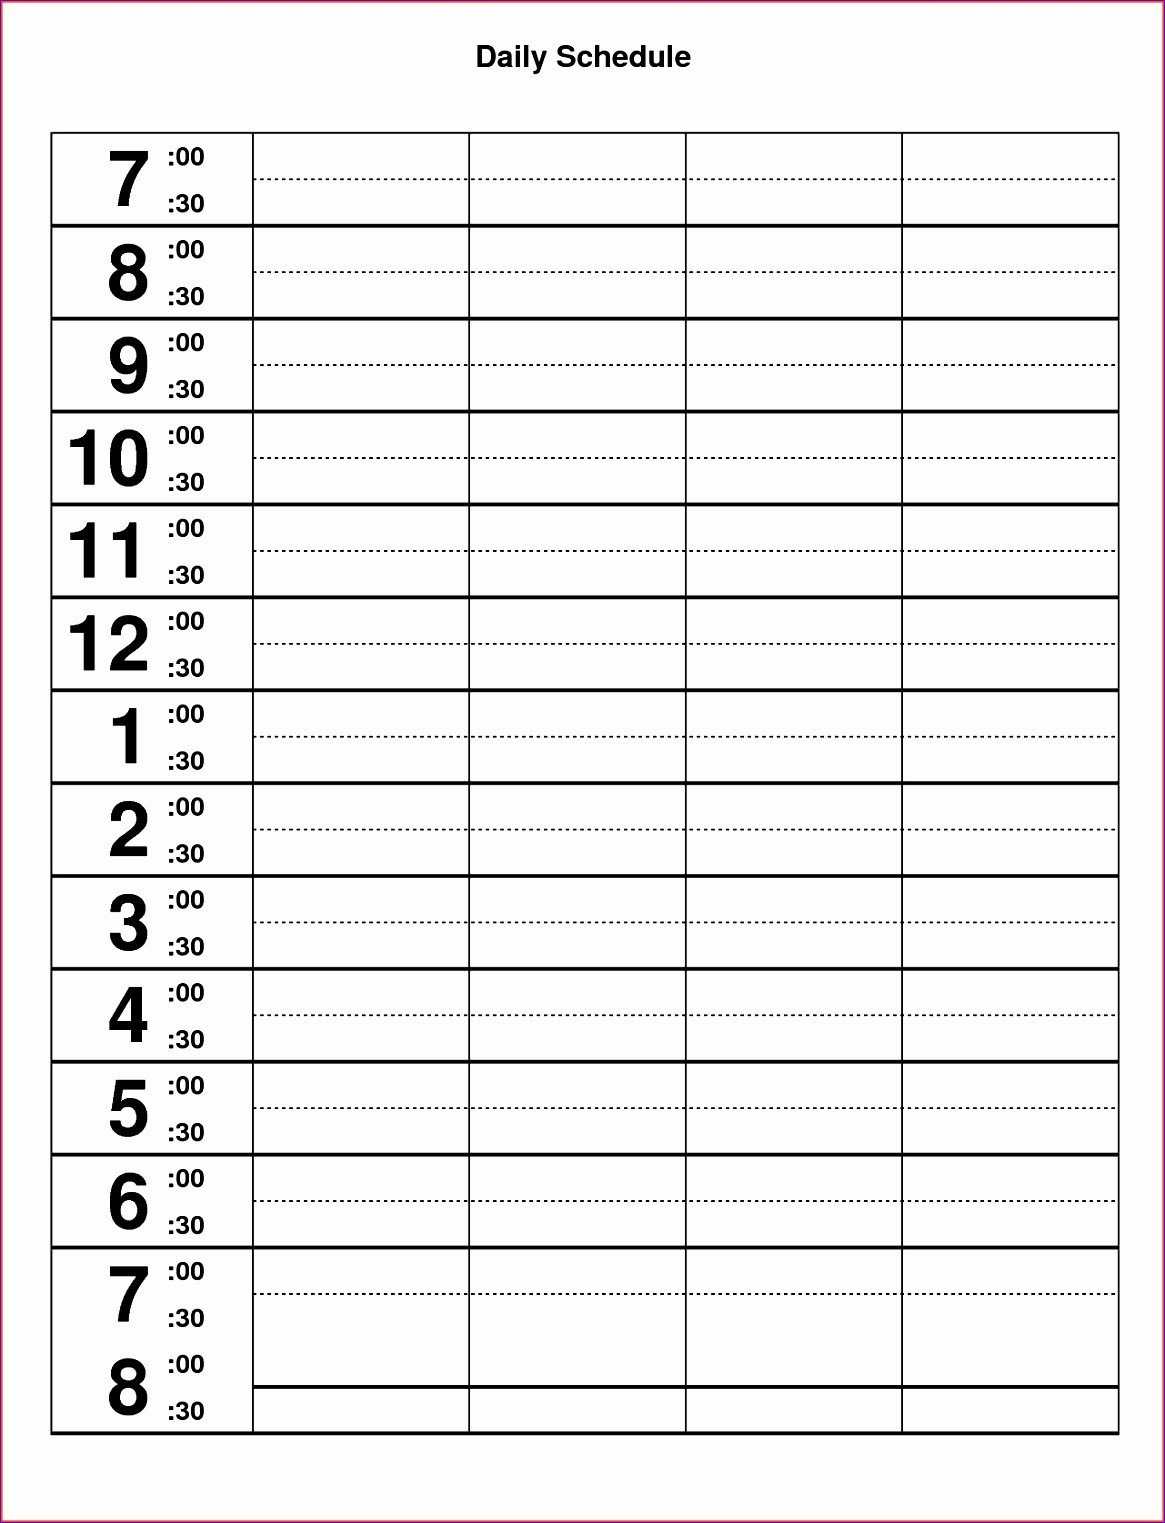 Hourly Schedule Template Excel 10 Excel Hourly Schedule Template Exceltemplates